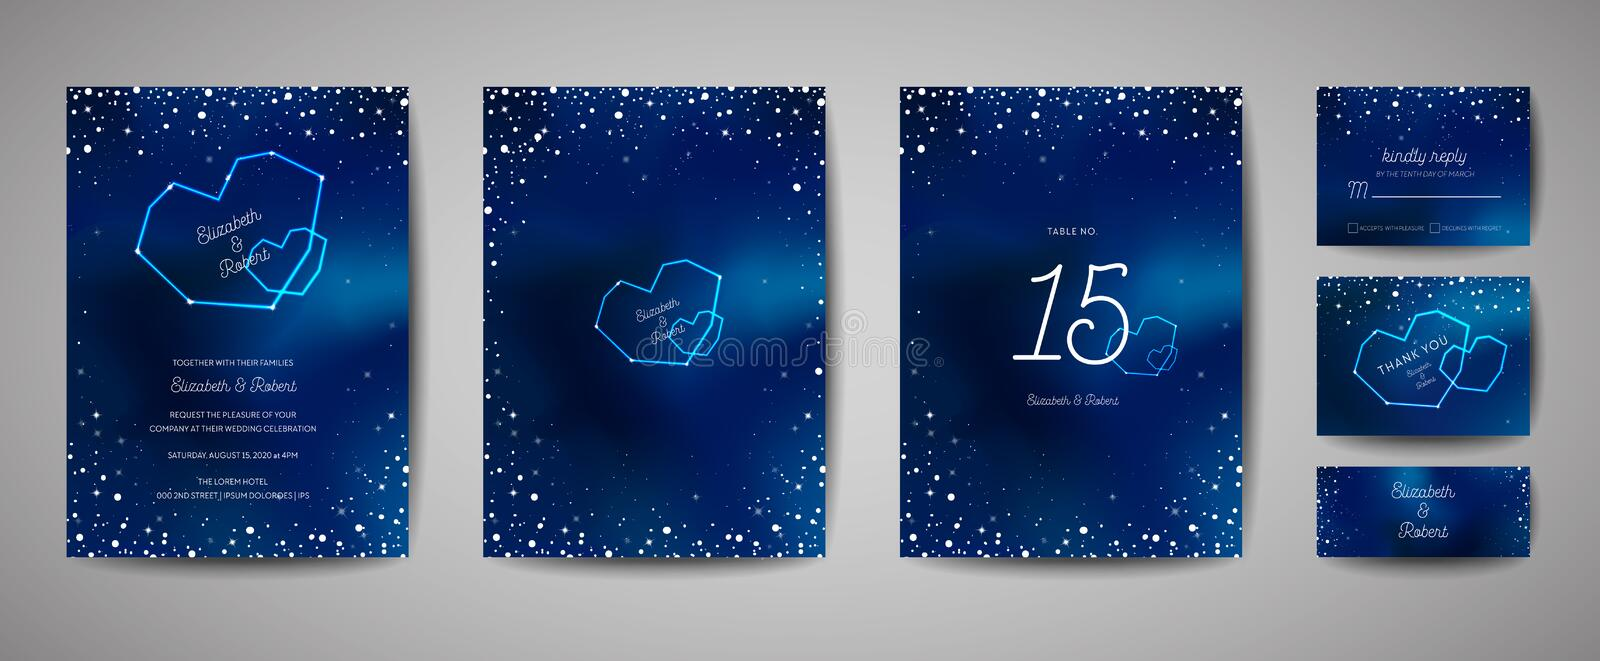 Starry Night Sky Trendy Wedding Invitation Card, Save the Date Celestial Template with Galaxy, Space, Stars royalty free illustration